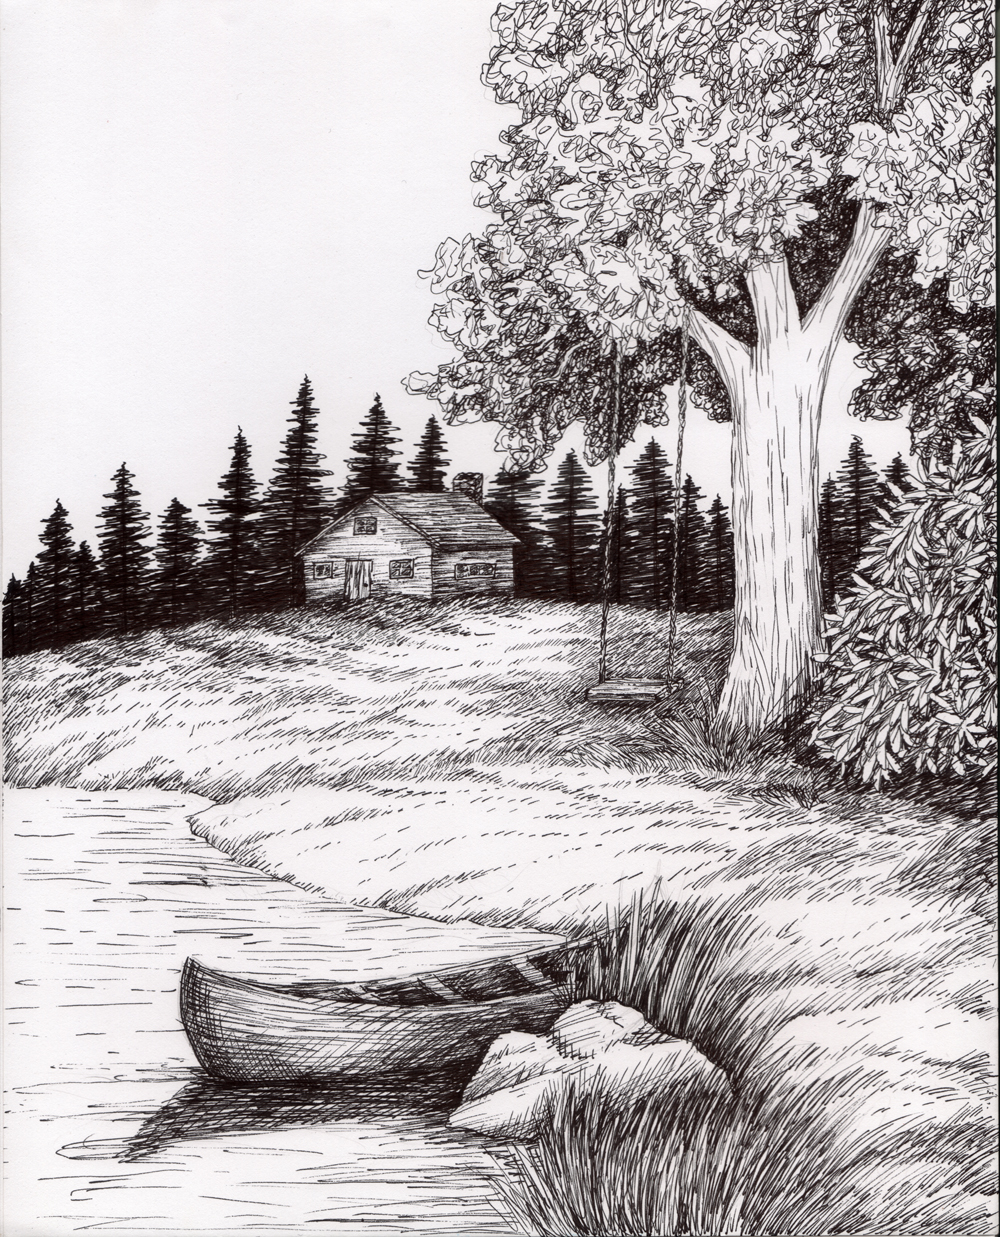 Drawn scenic black pen And and  Ink landscape